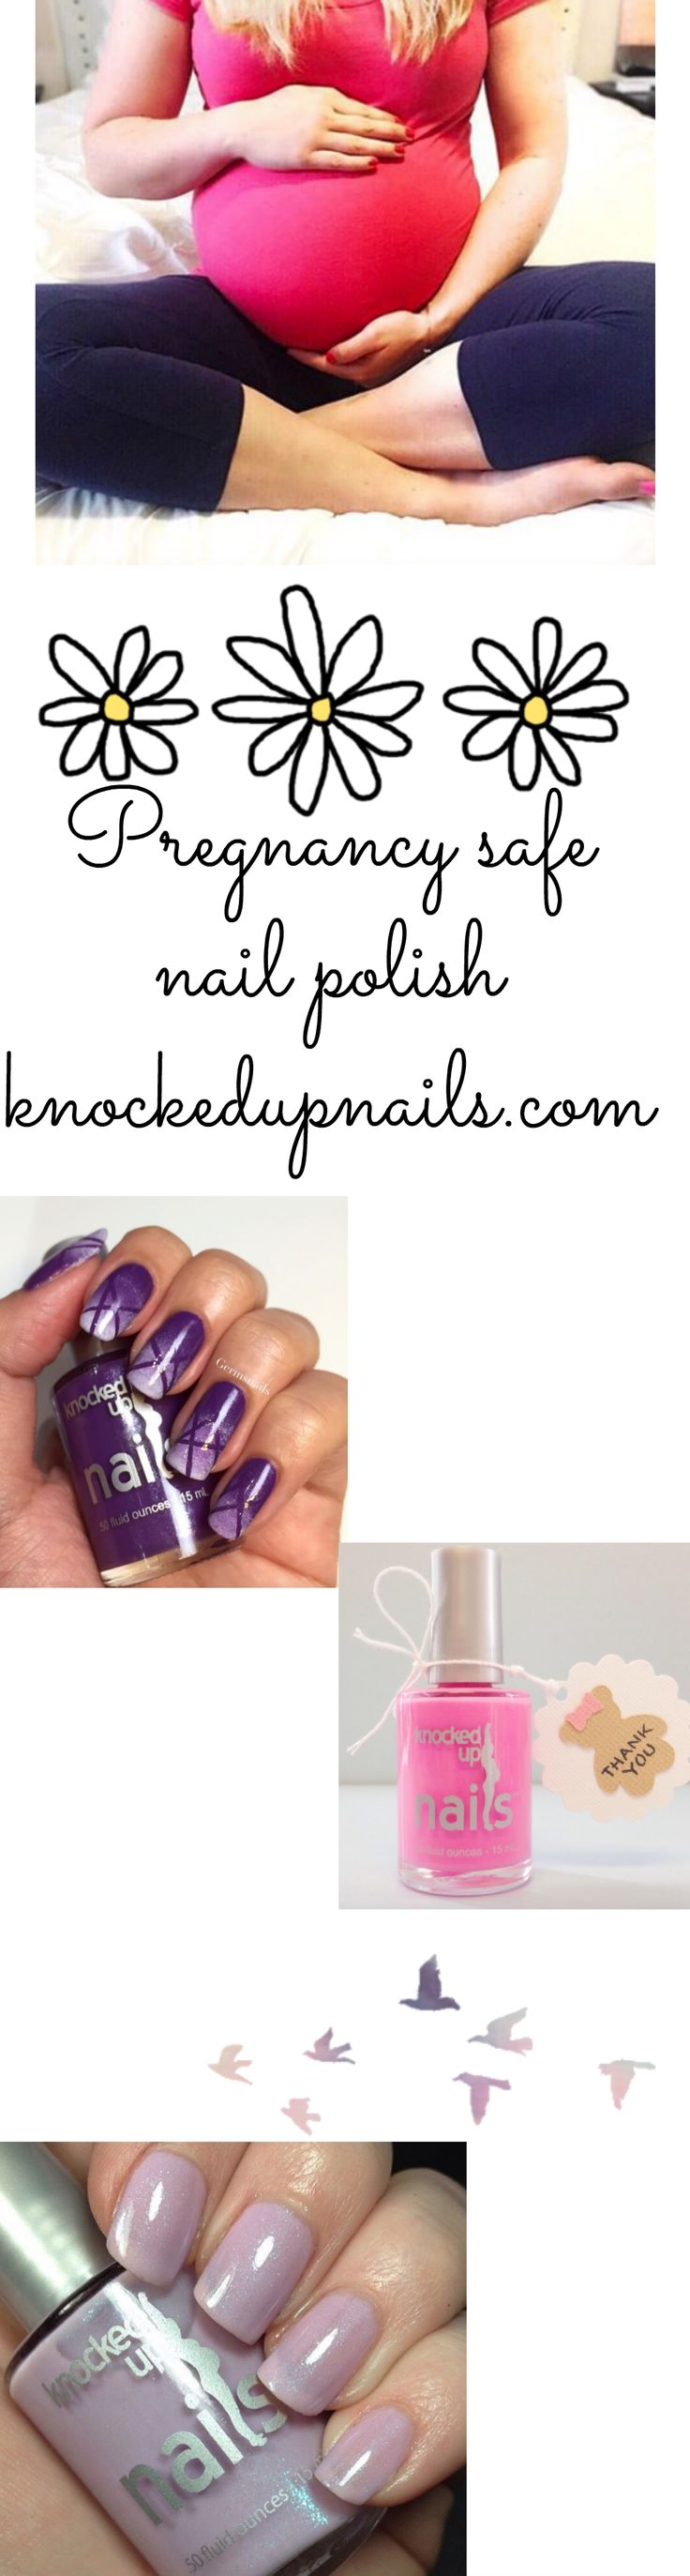 213 best Knocked Up Nails images on Pinterest | Nail polish ...